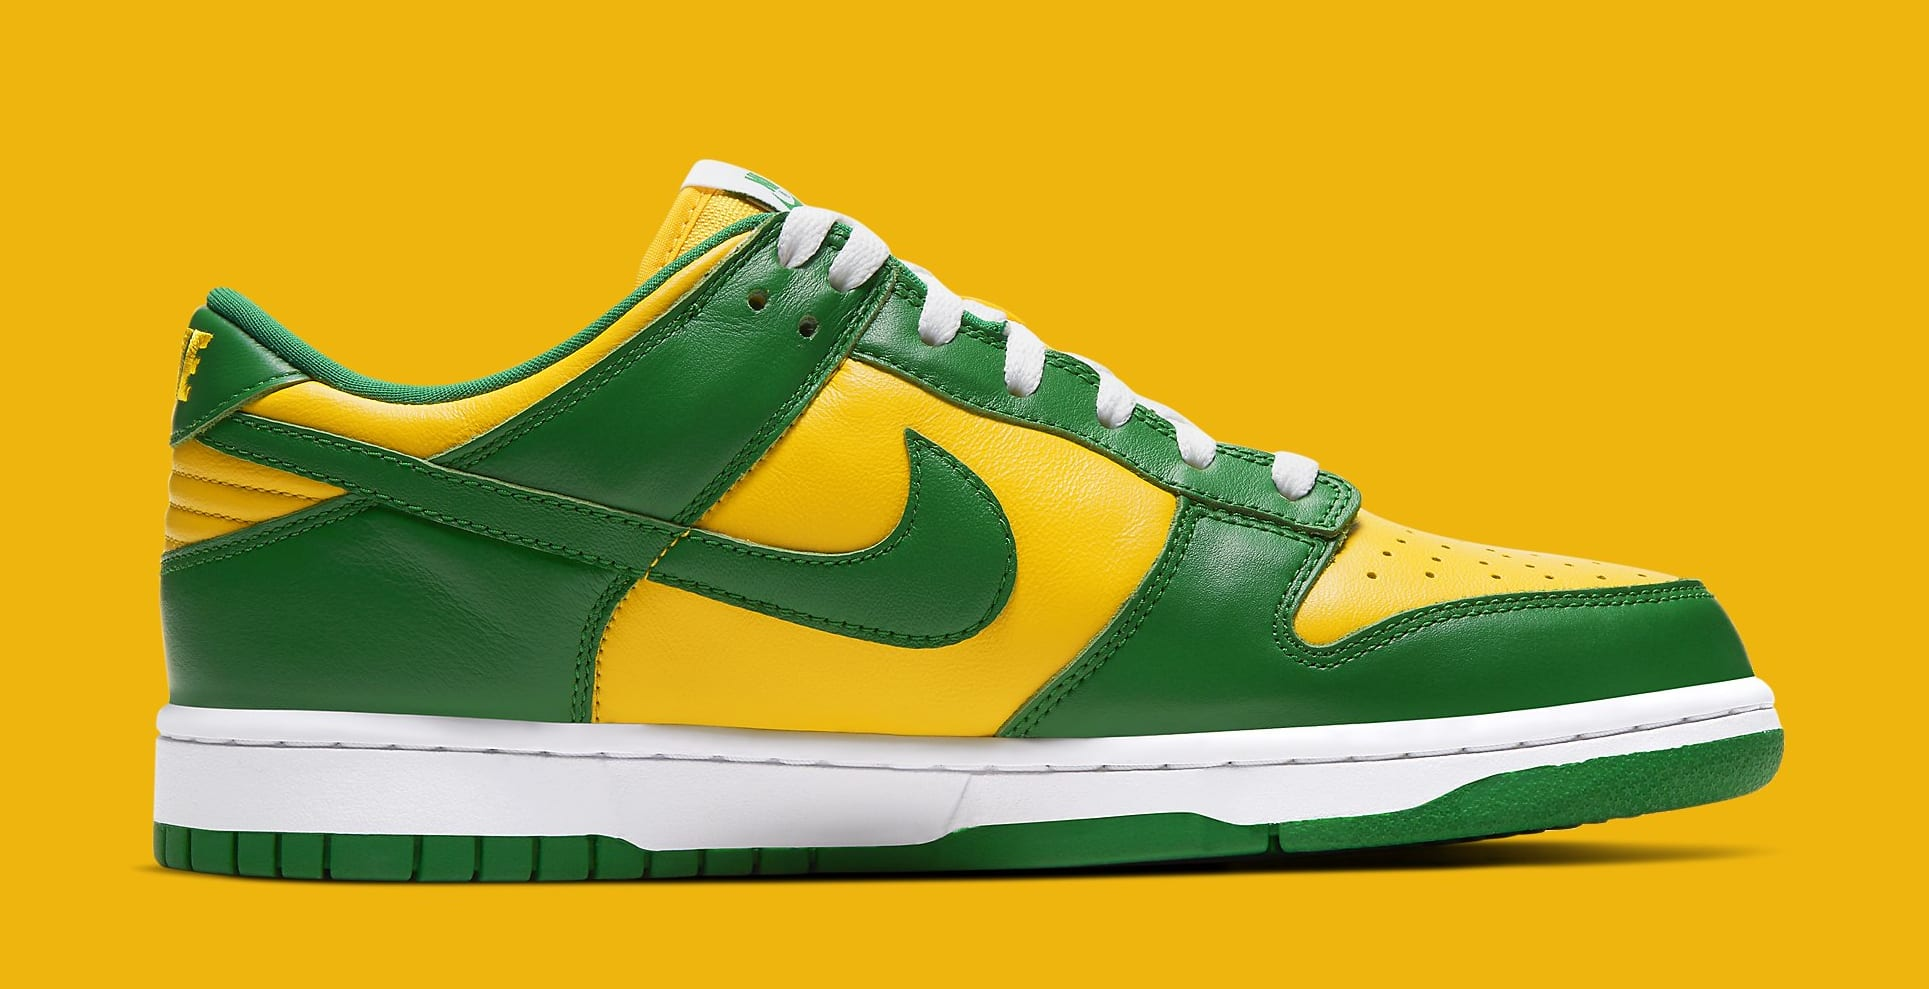 Nike Dunk Low 'Brazil' 2020 CU1727-700 Medial